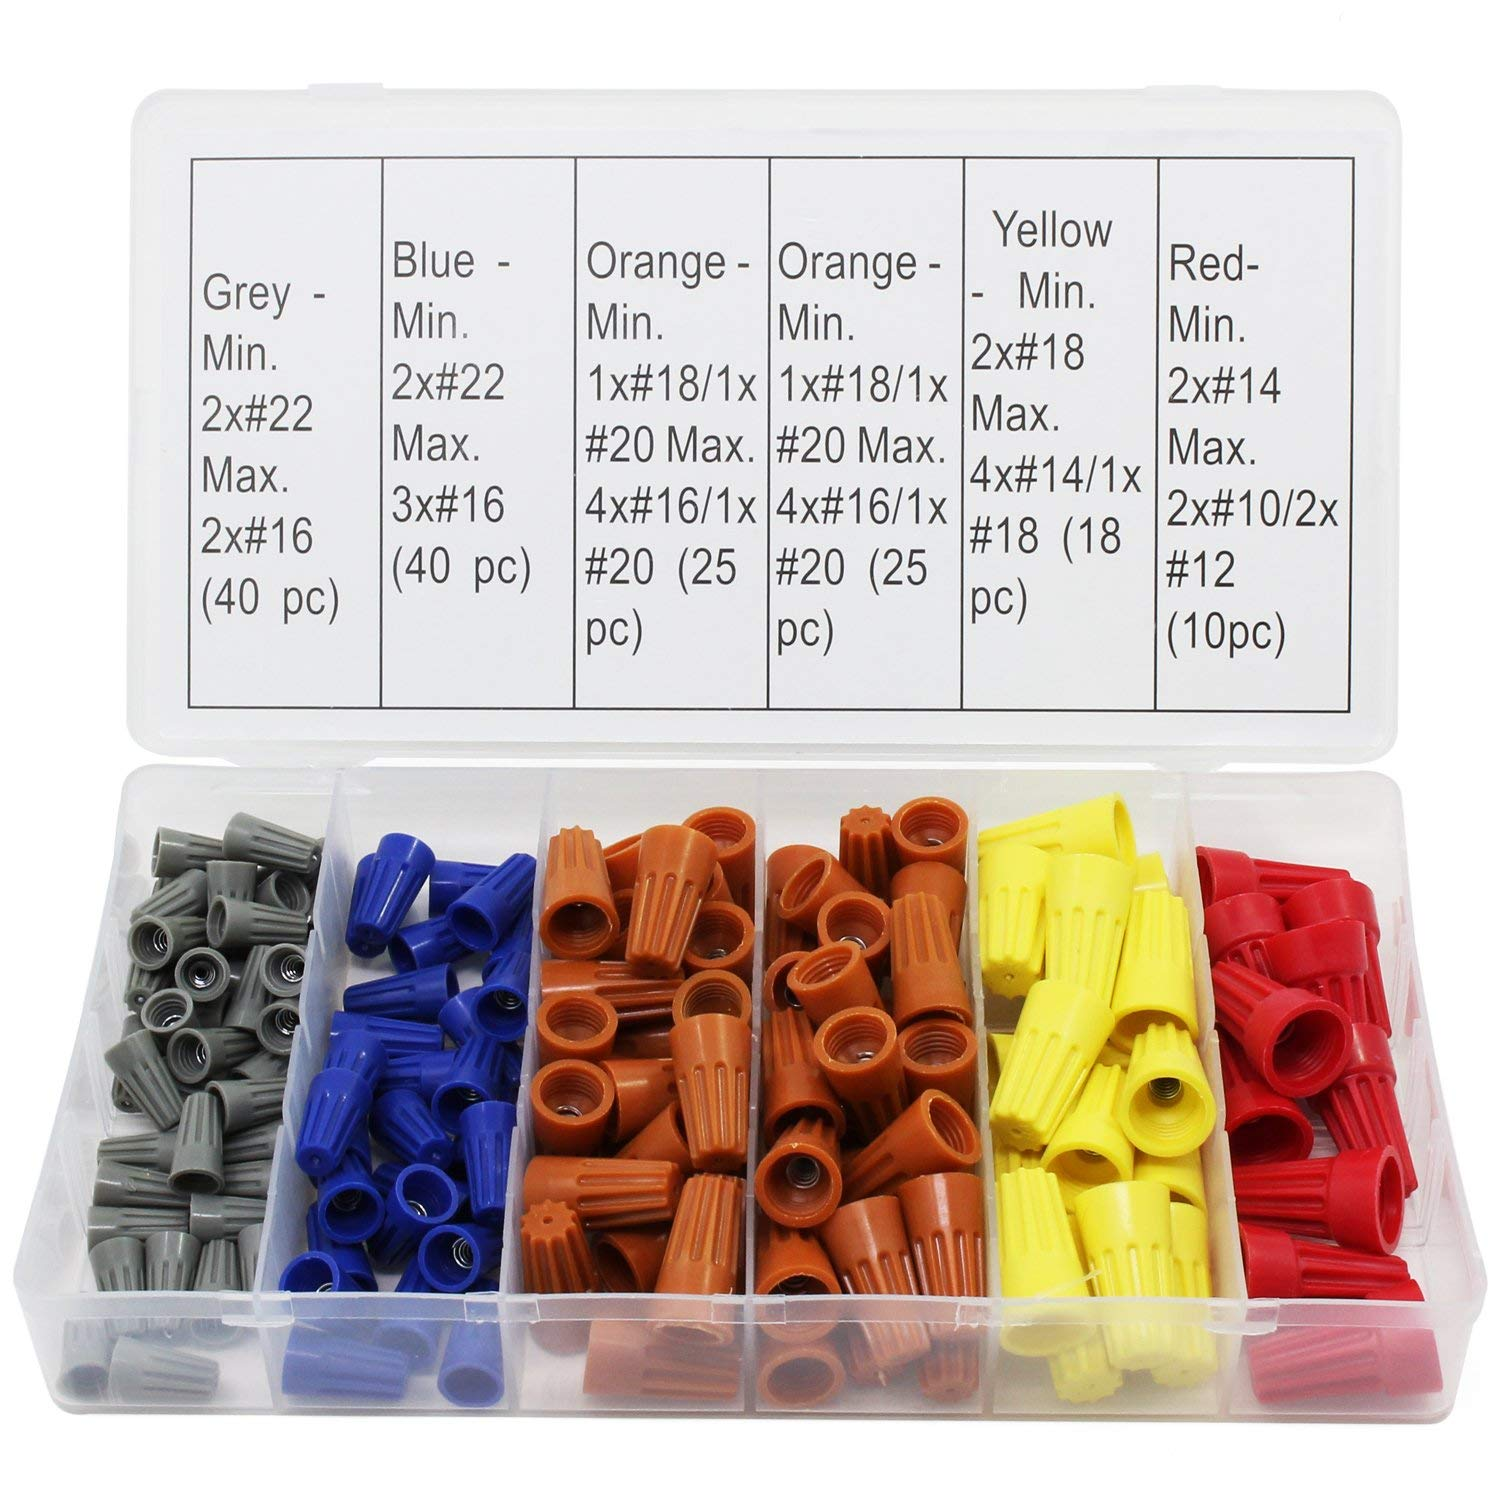 OCR Electrical Wire Connector Twist-On Screw Terminal Spring Inserted Nuts Caps Assortment Set 158PCS